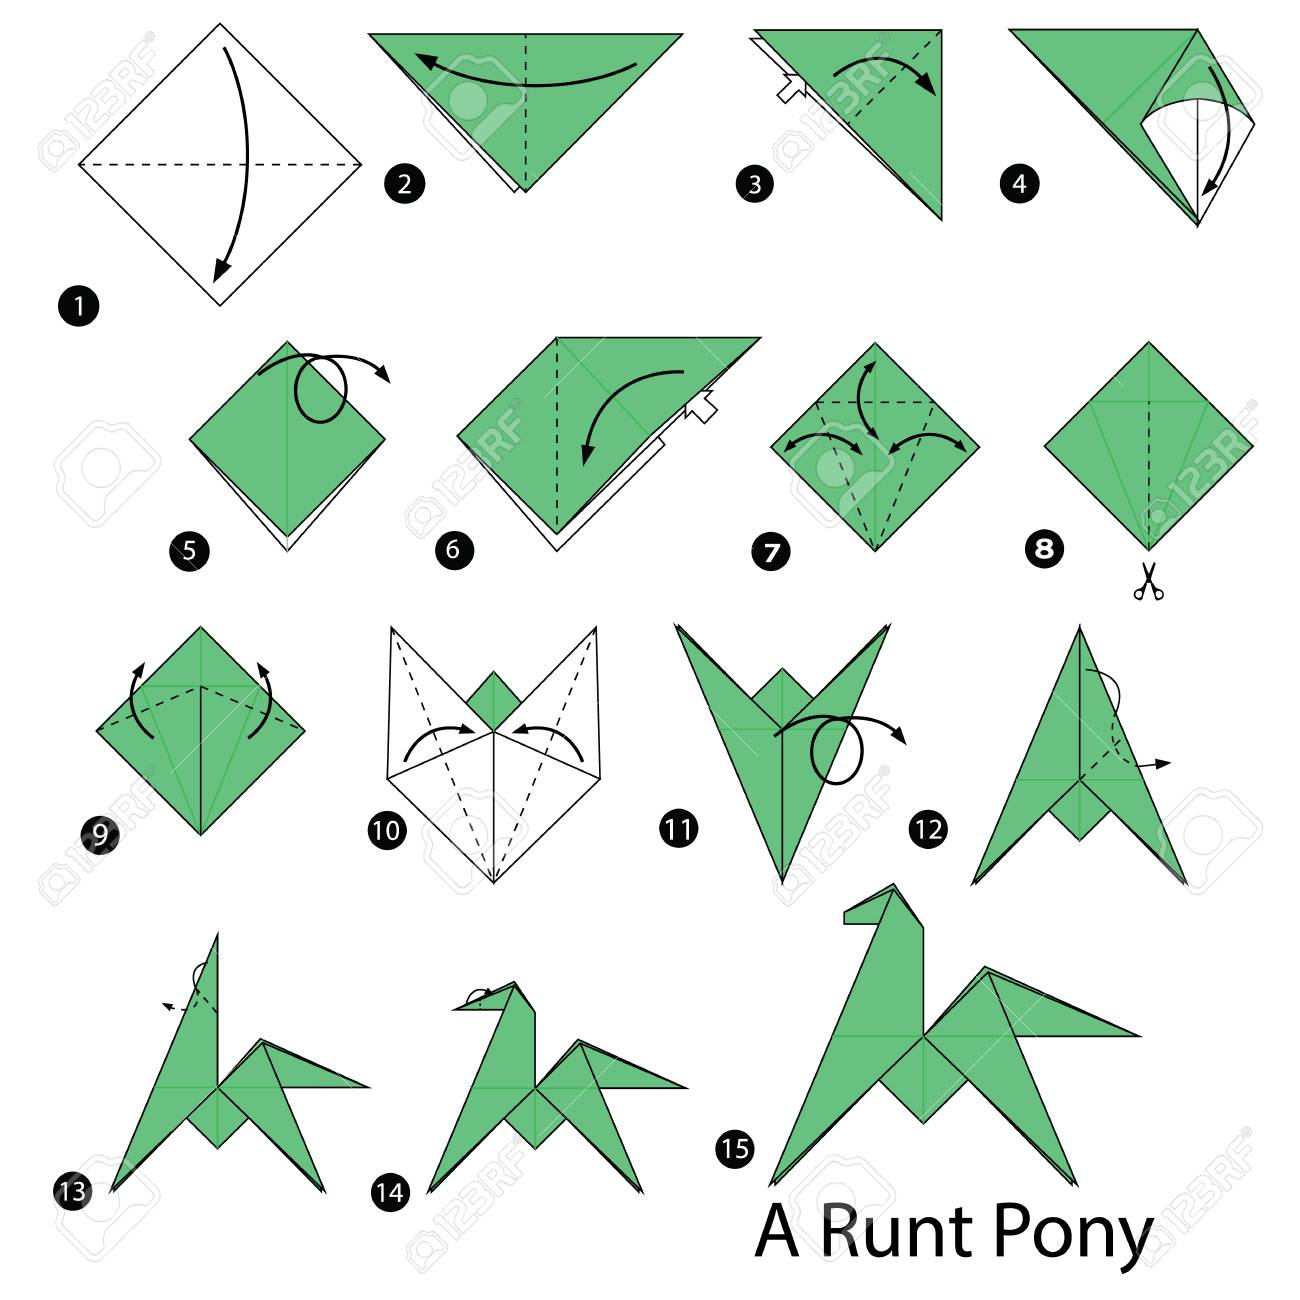 Step by step instructions on how to make origami of an runt pony step by step instructions on how to make origami of an runt pony stock vector jeuxipadfo Images